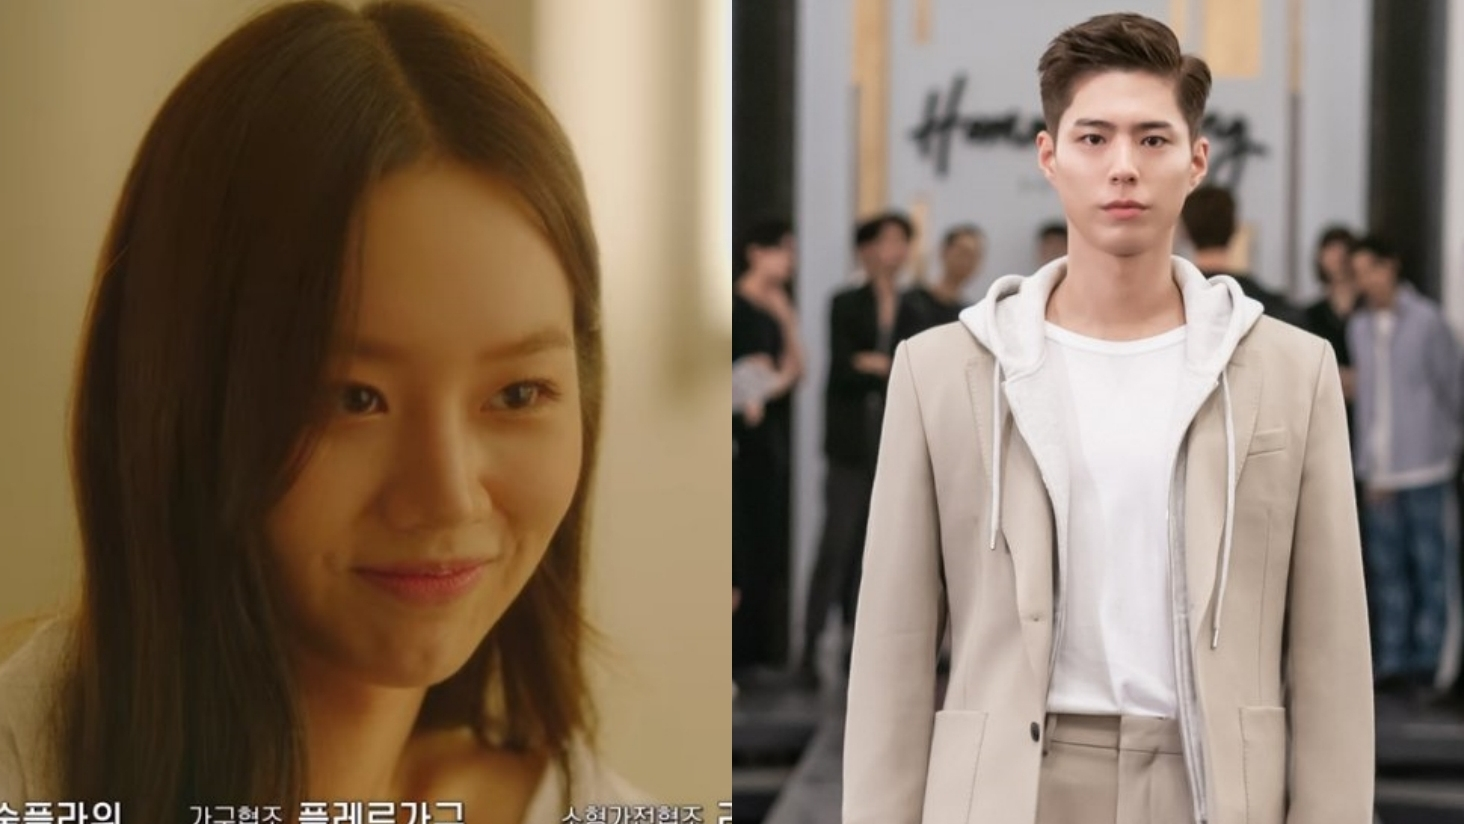 Hyeri Appears as a Cameo in Drama 'Record of Youth'